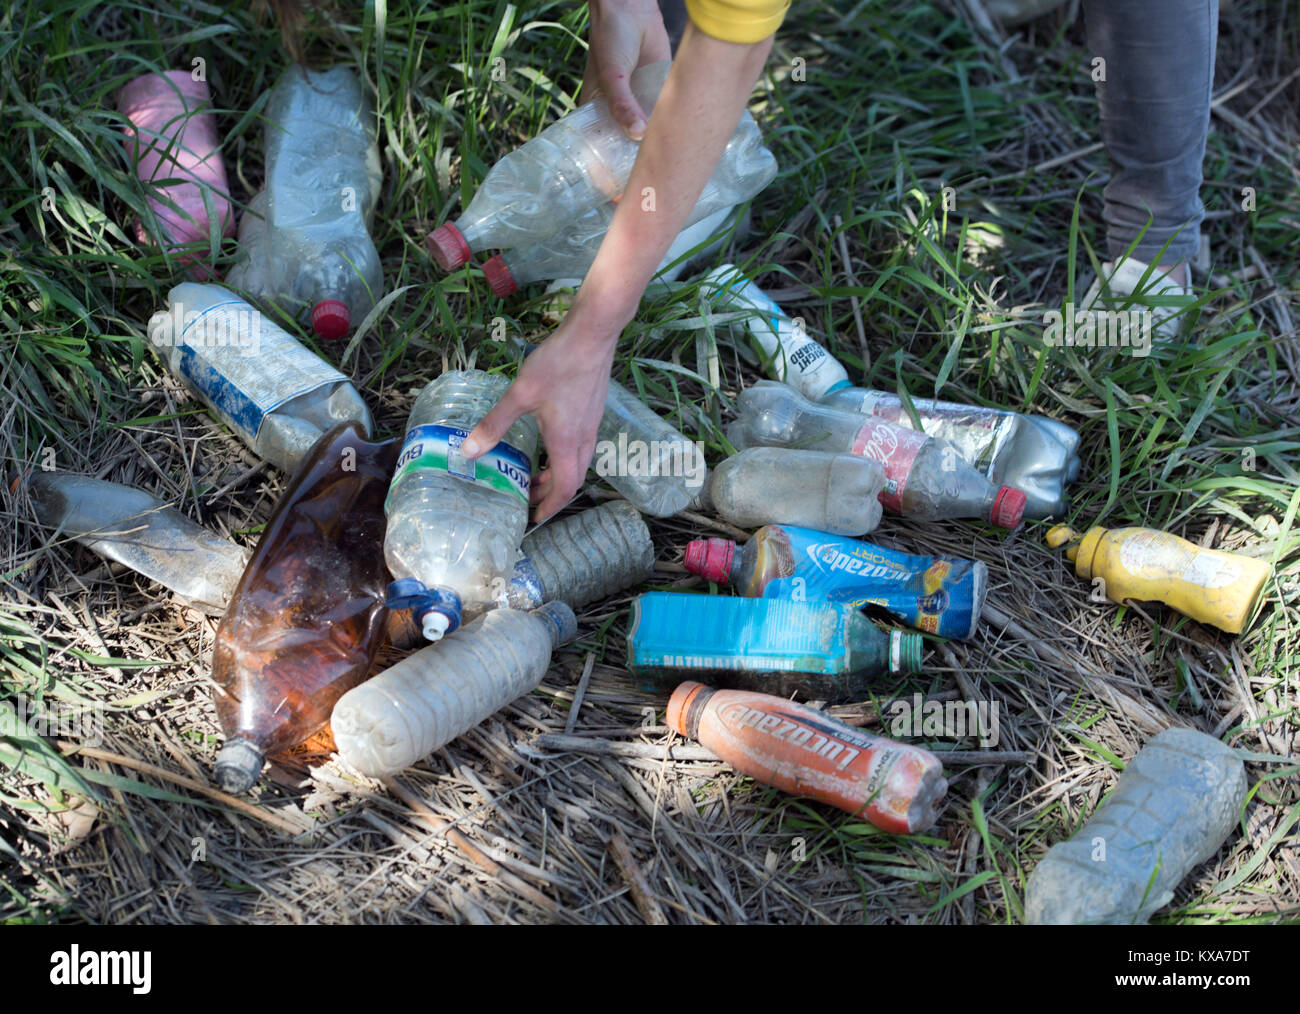 A member of 'City To Sea', a campaign to rid Bristol of plastic bottle waste collecting waste bottles on the banks - Stock Image